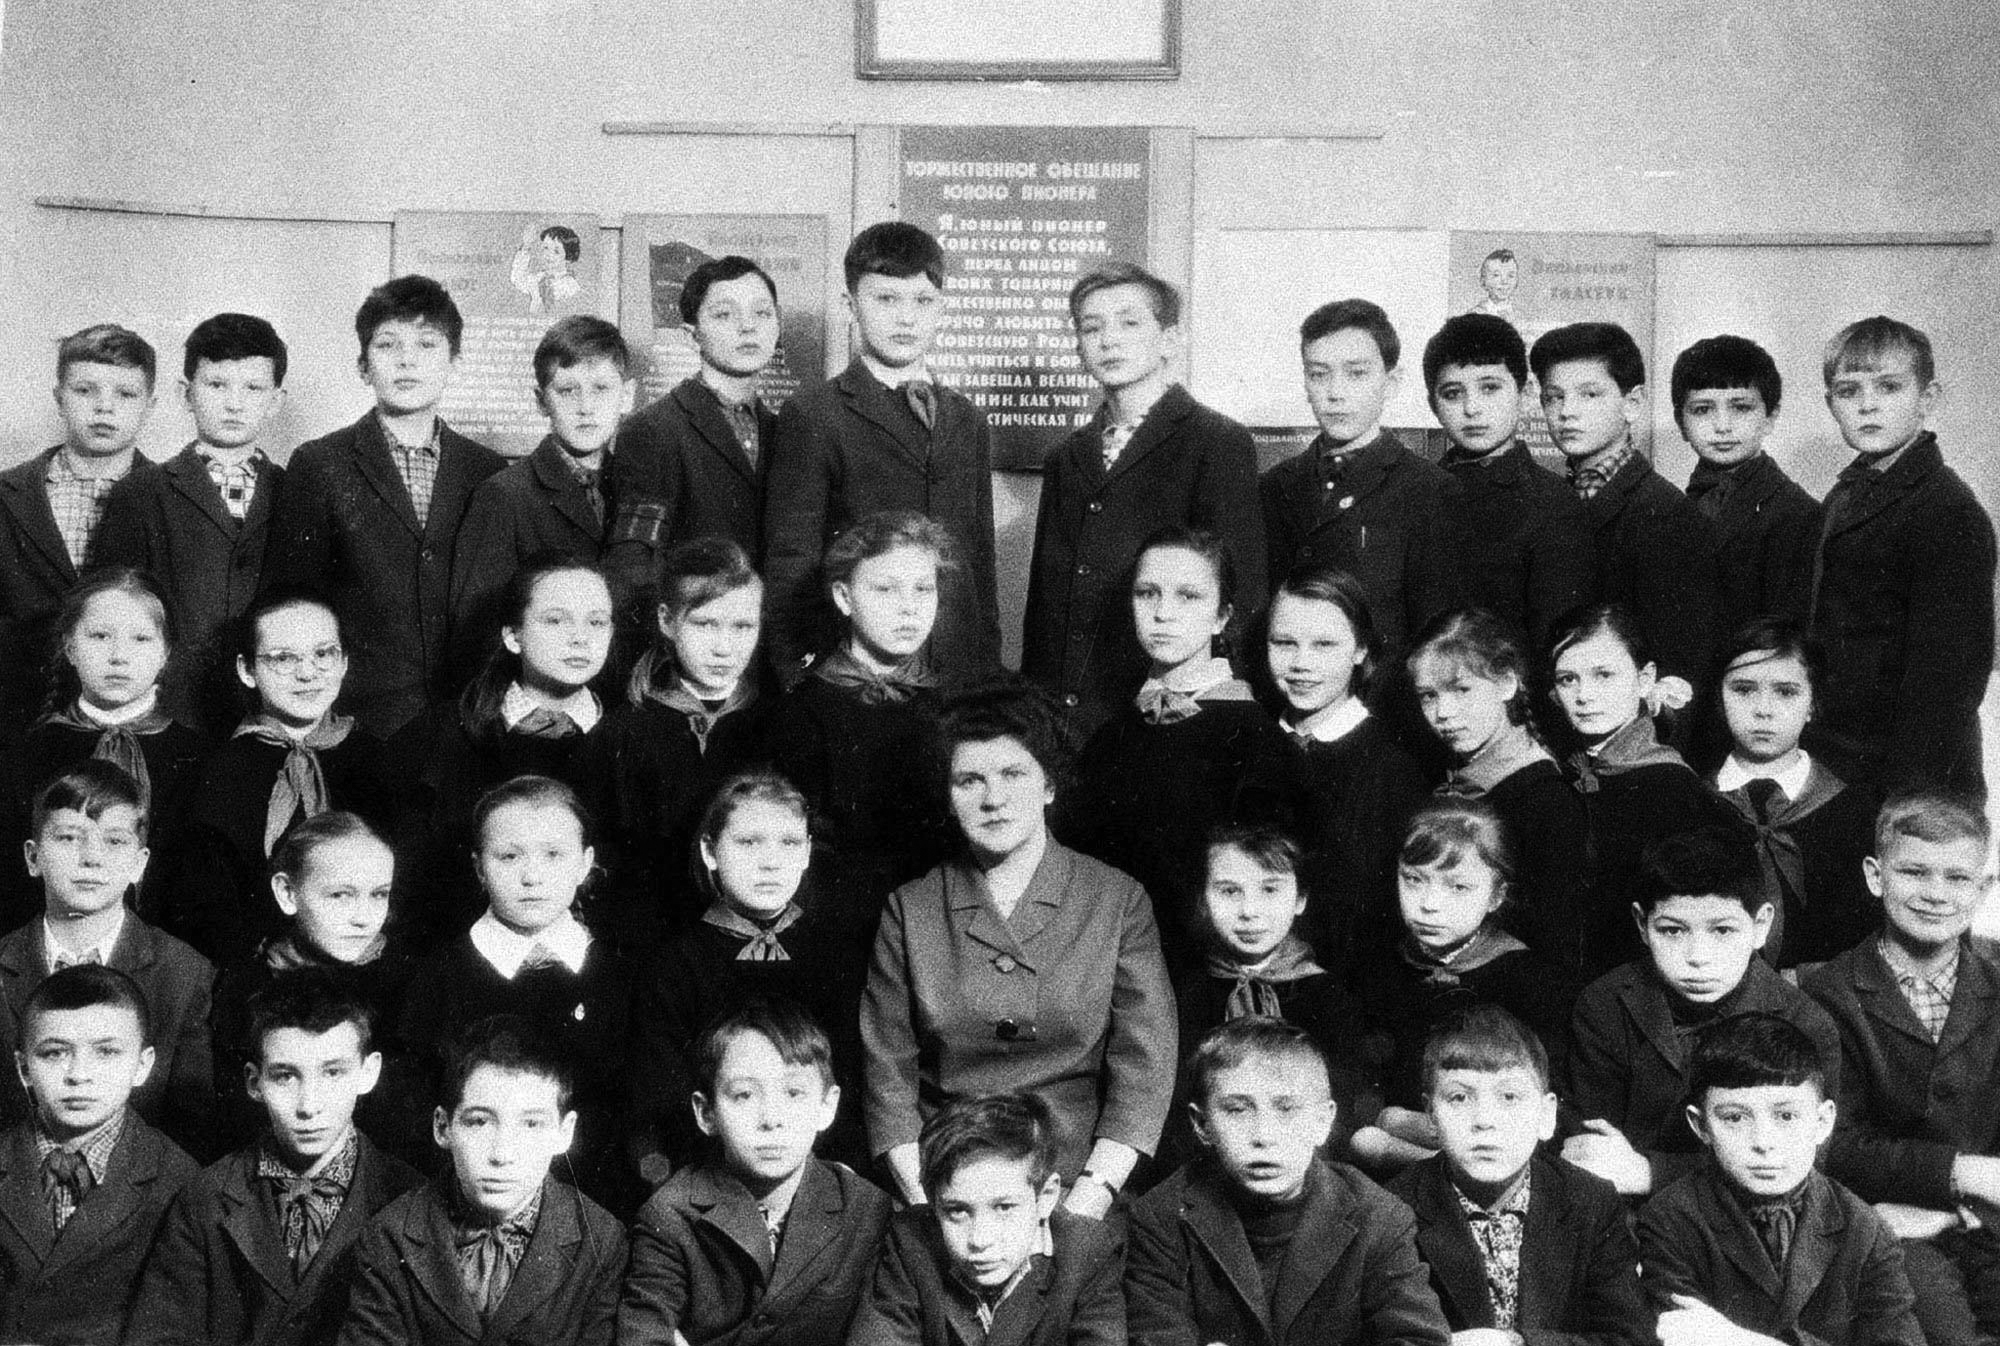 A class photo with Vladimir Putin, (first row, third from right), circa 1964-65.